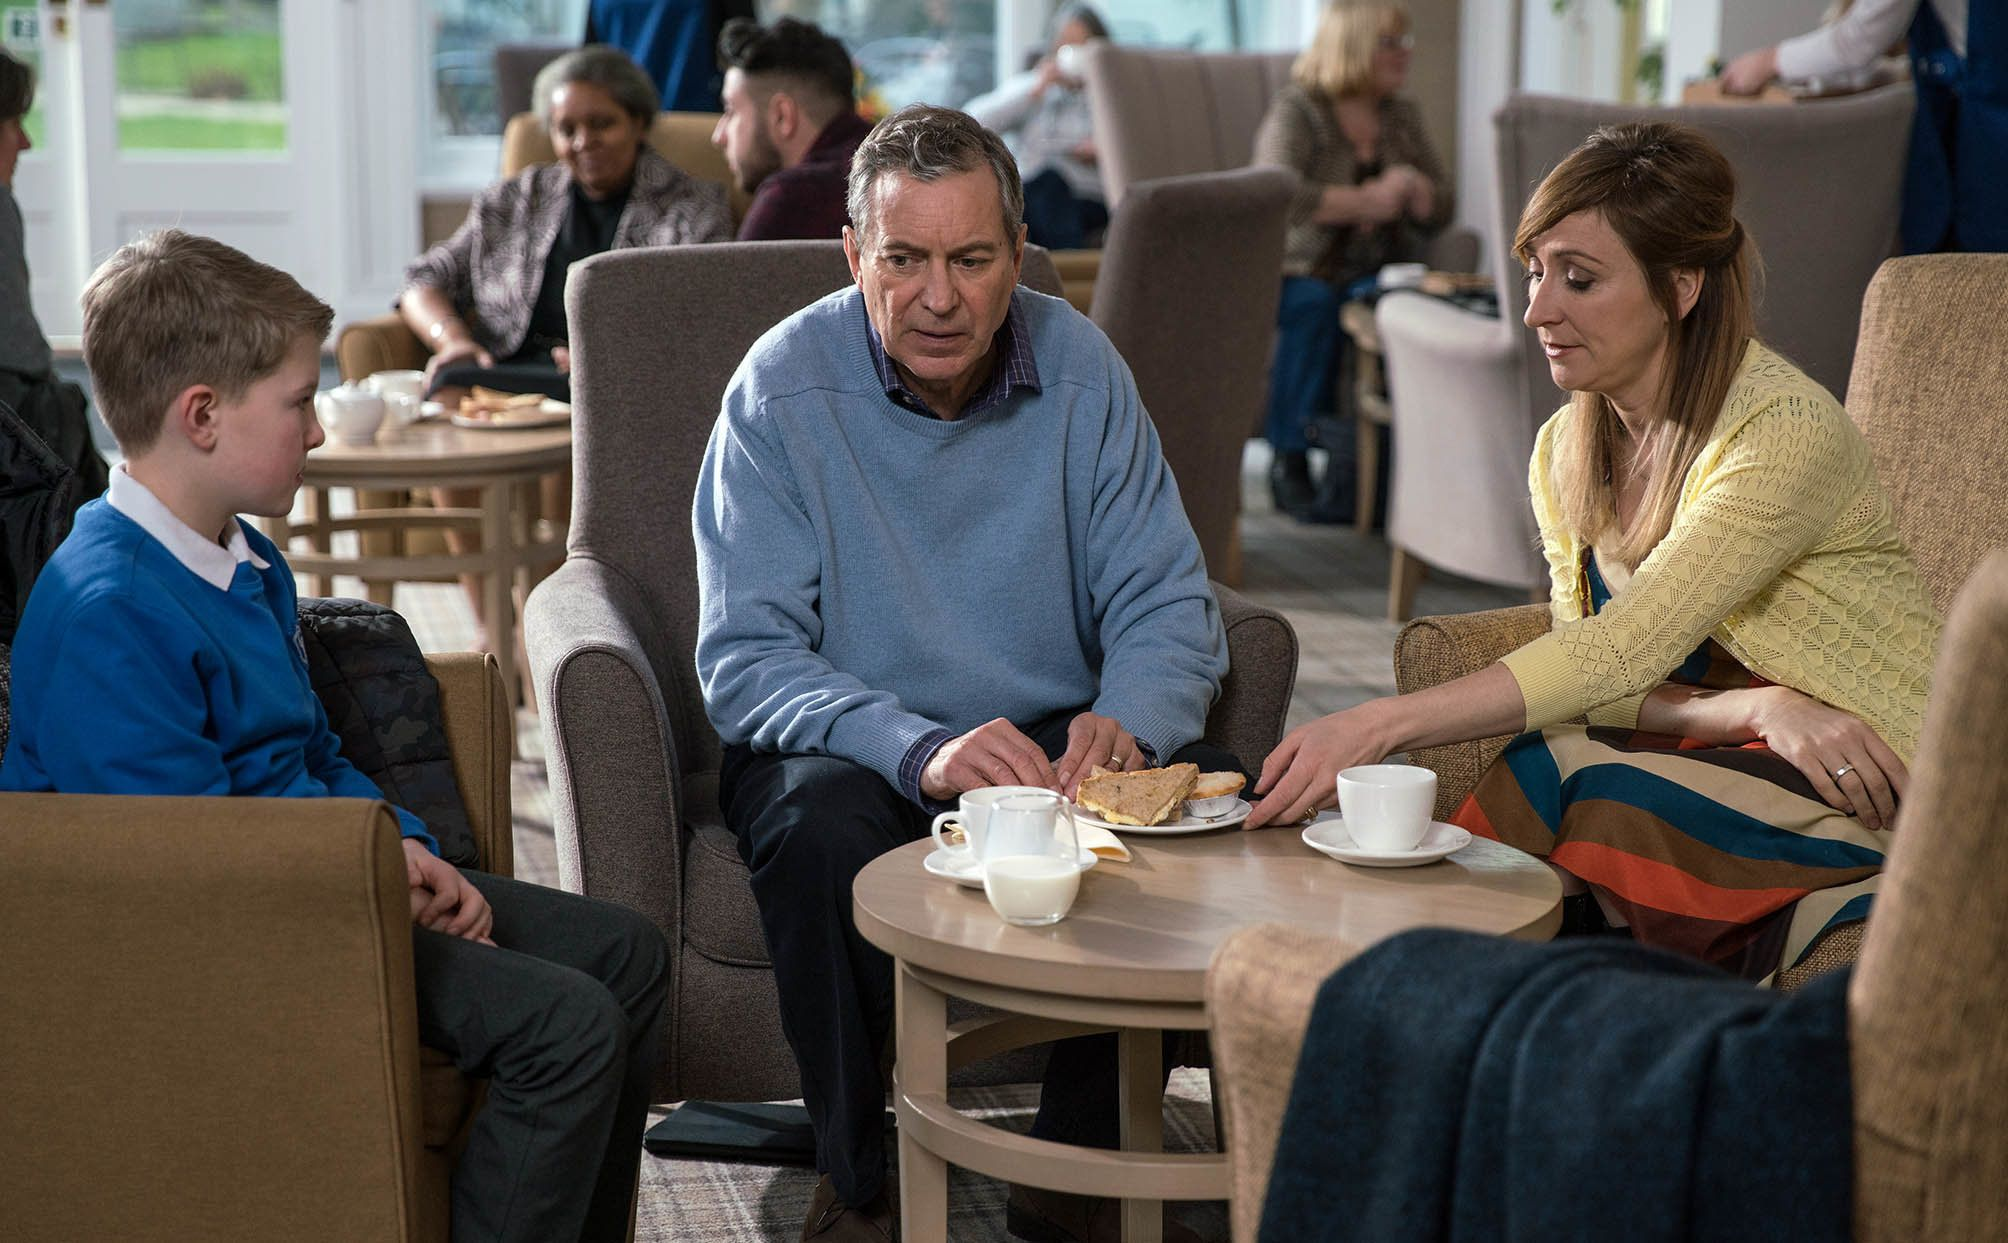 Emmerdale's Ashley To Unwittingly Cause More Heartache For His Family, As Dementia Storyline